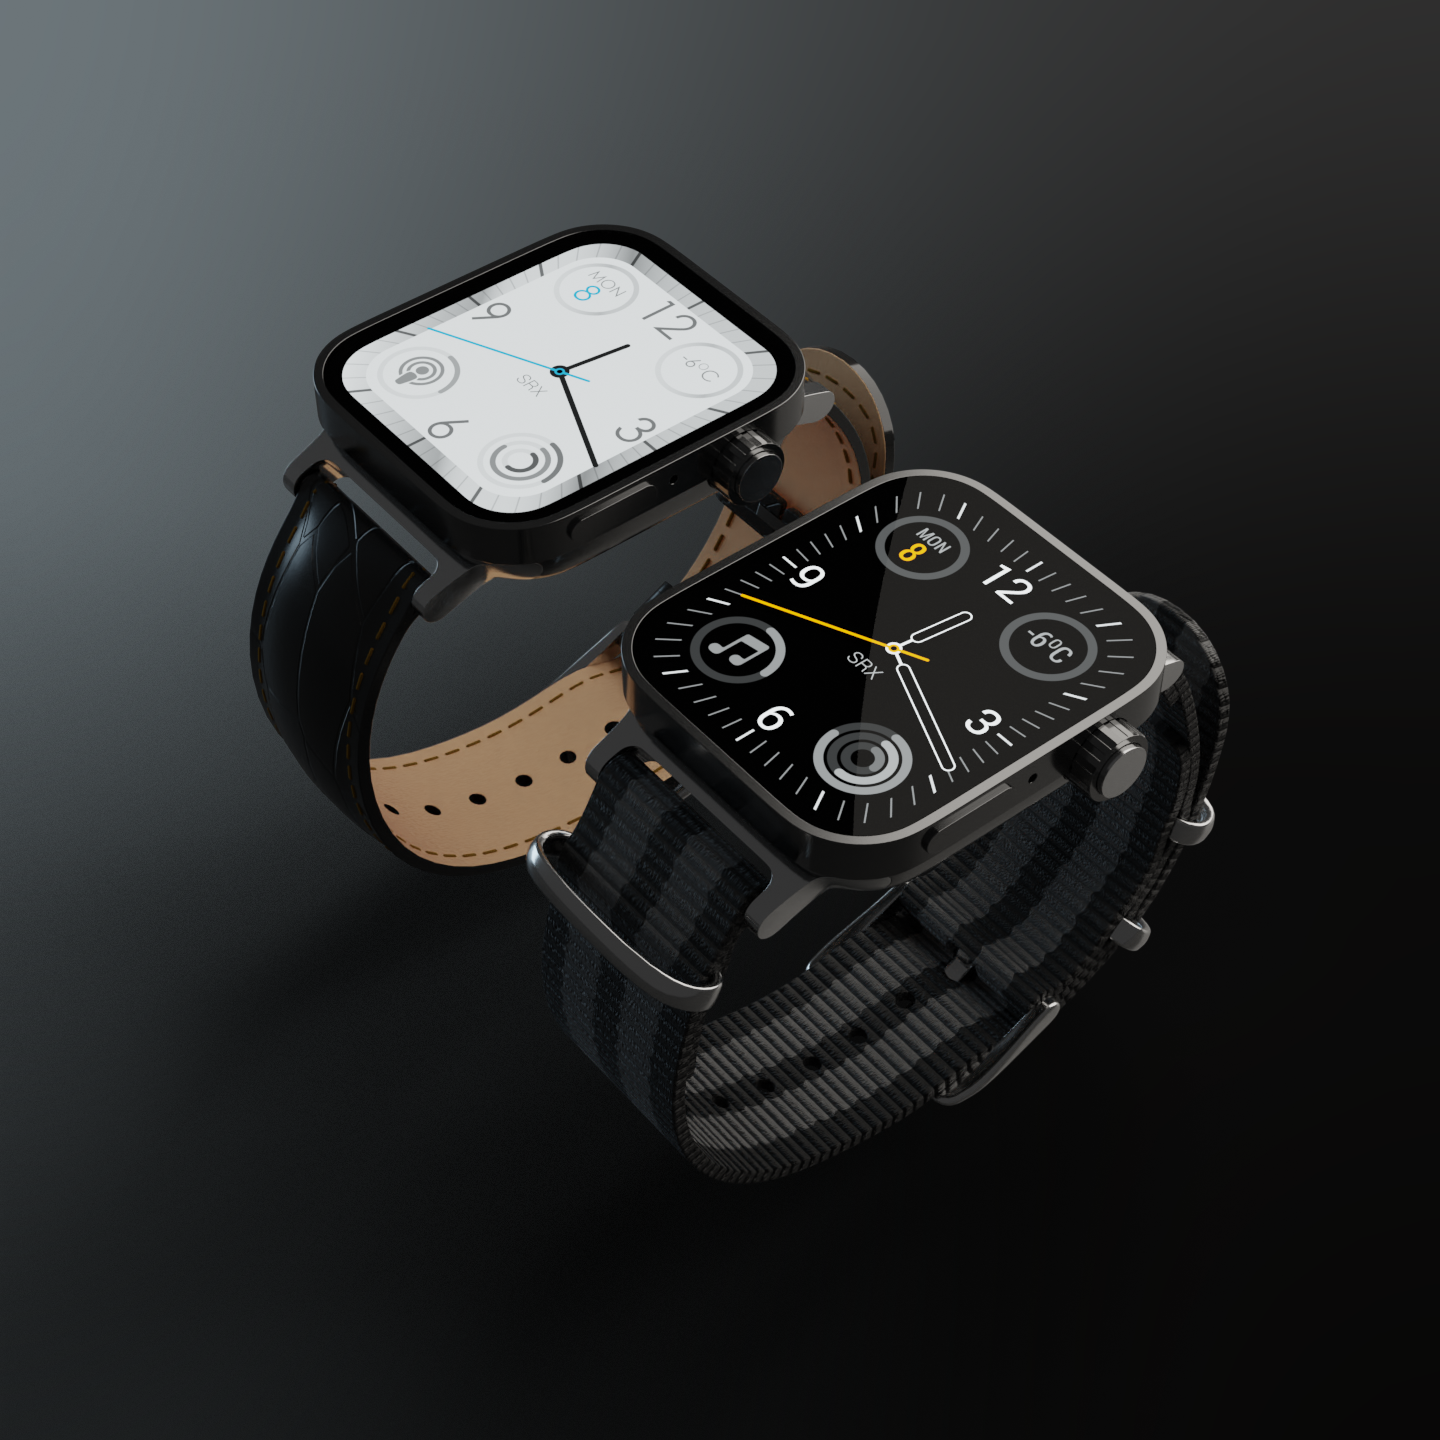 AppleWatchPro_Concept-no-text_SergeRoux_both